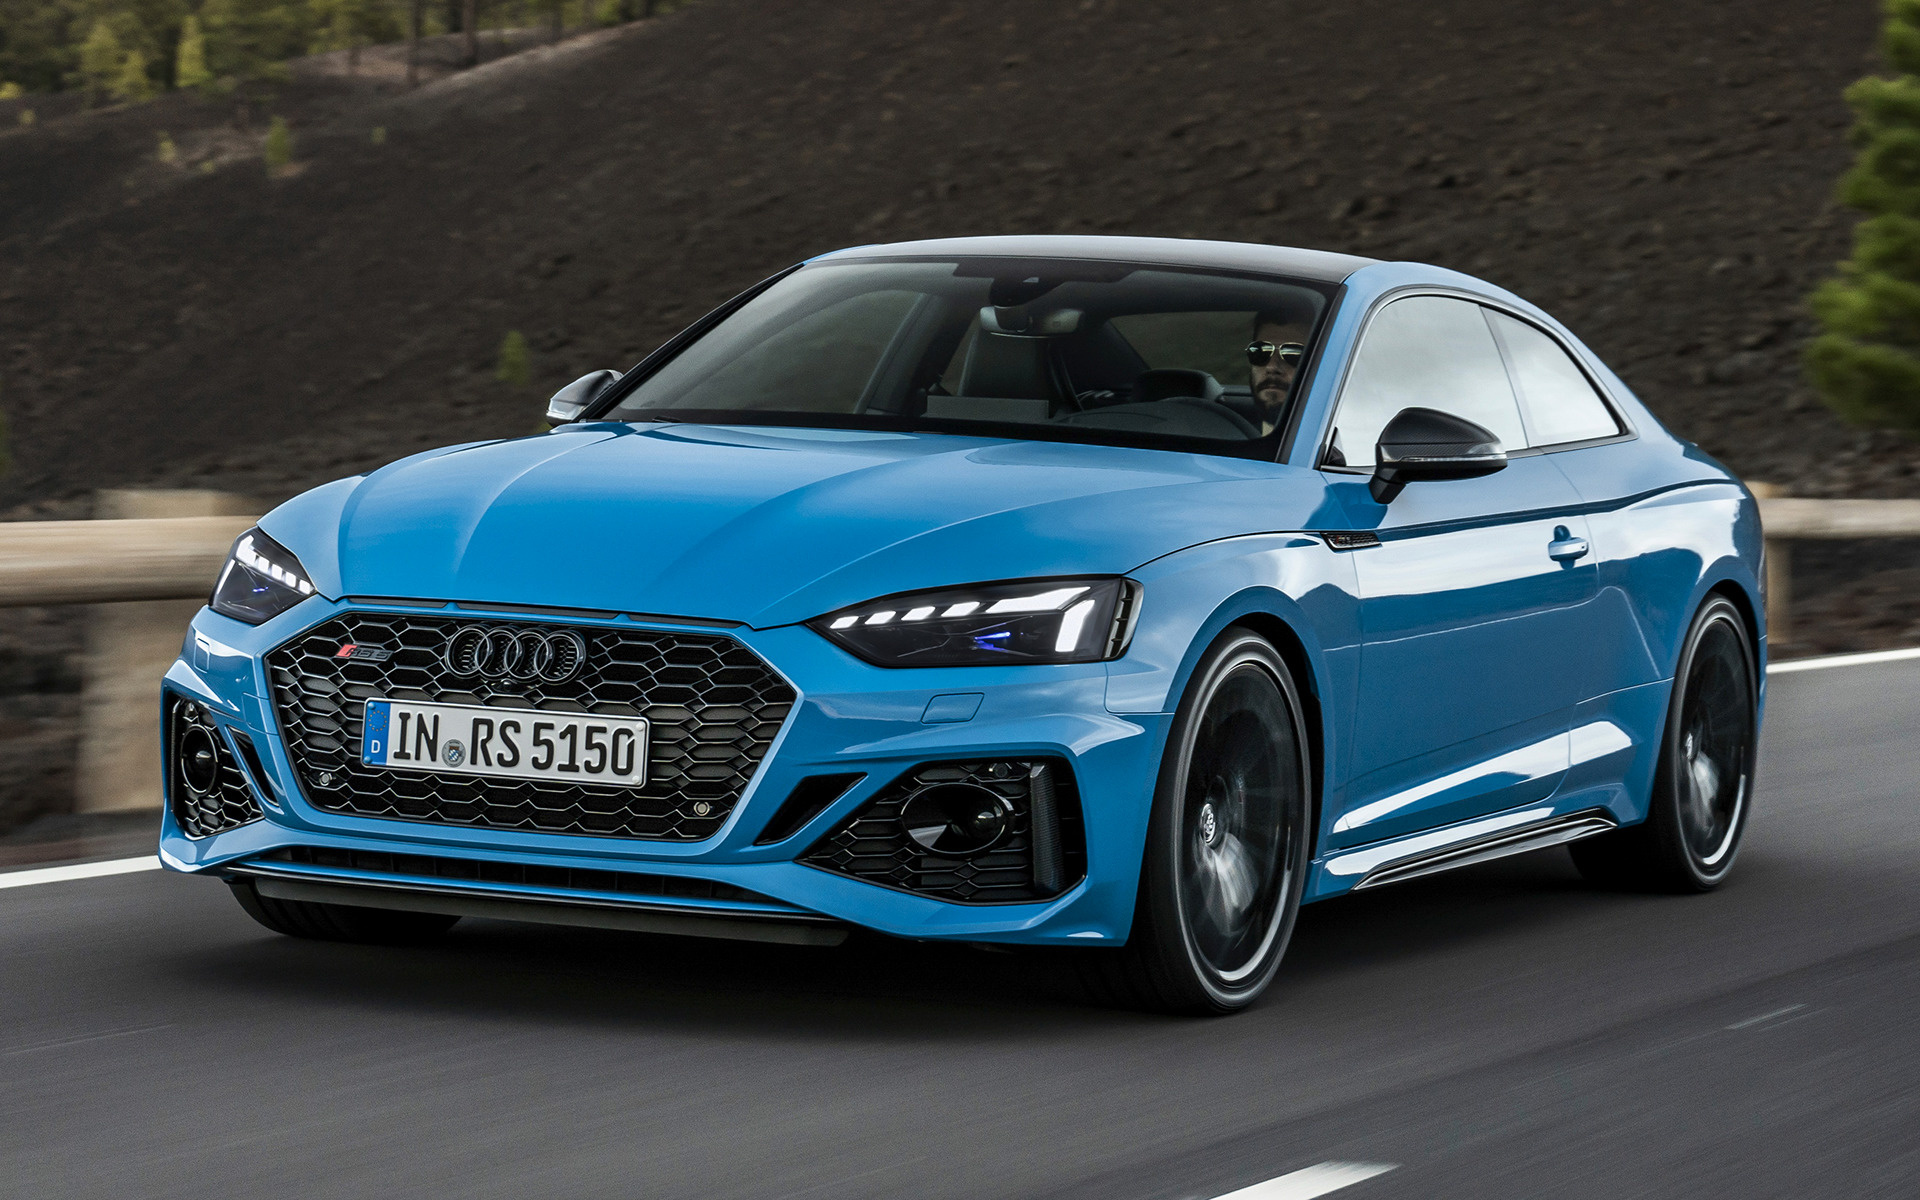 2020 Audi Rs 5 Coupe Wallpapers And Hd Images Car Pixel